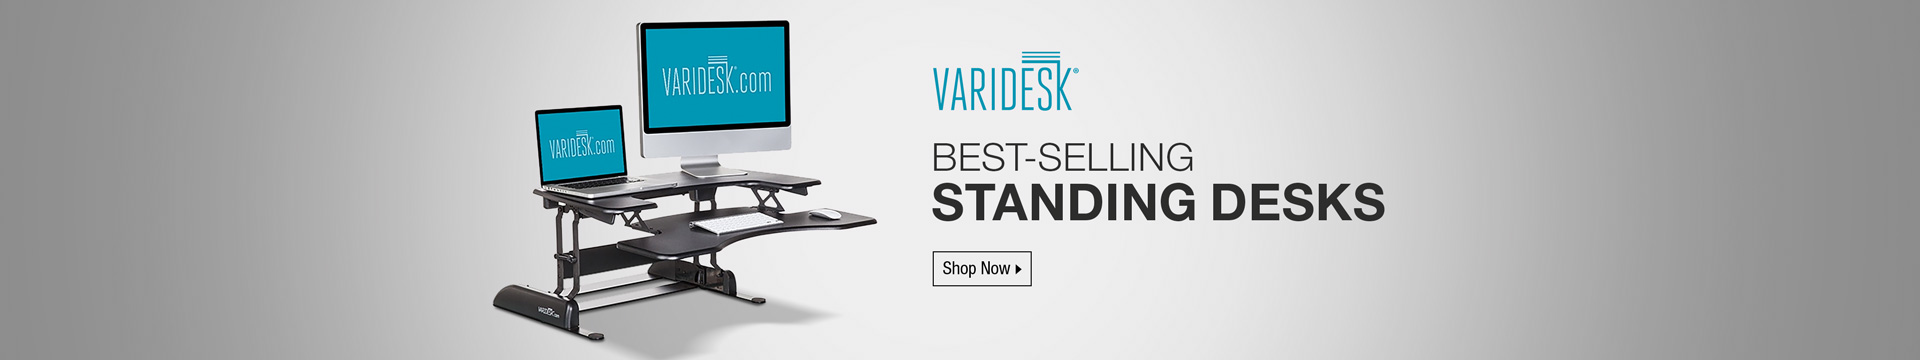 BEST-SELLING STANDING DESKS